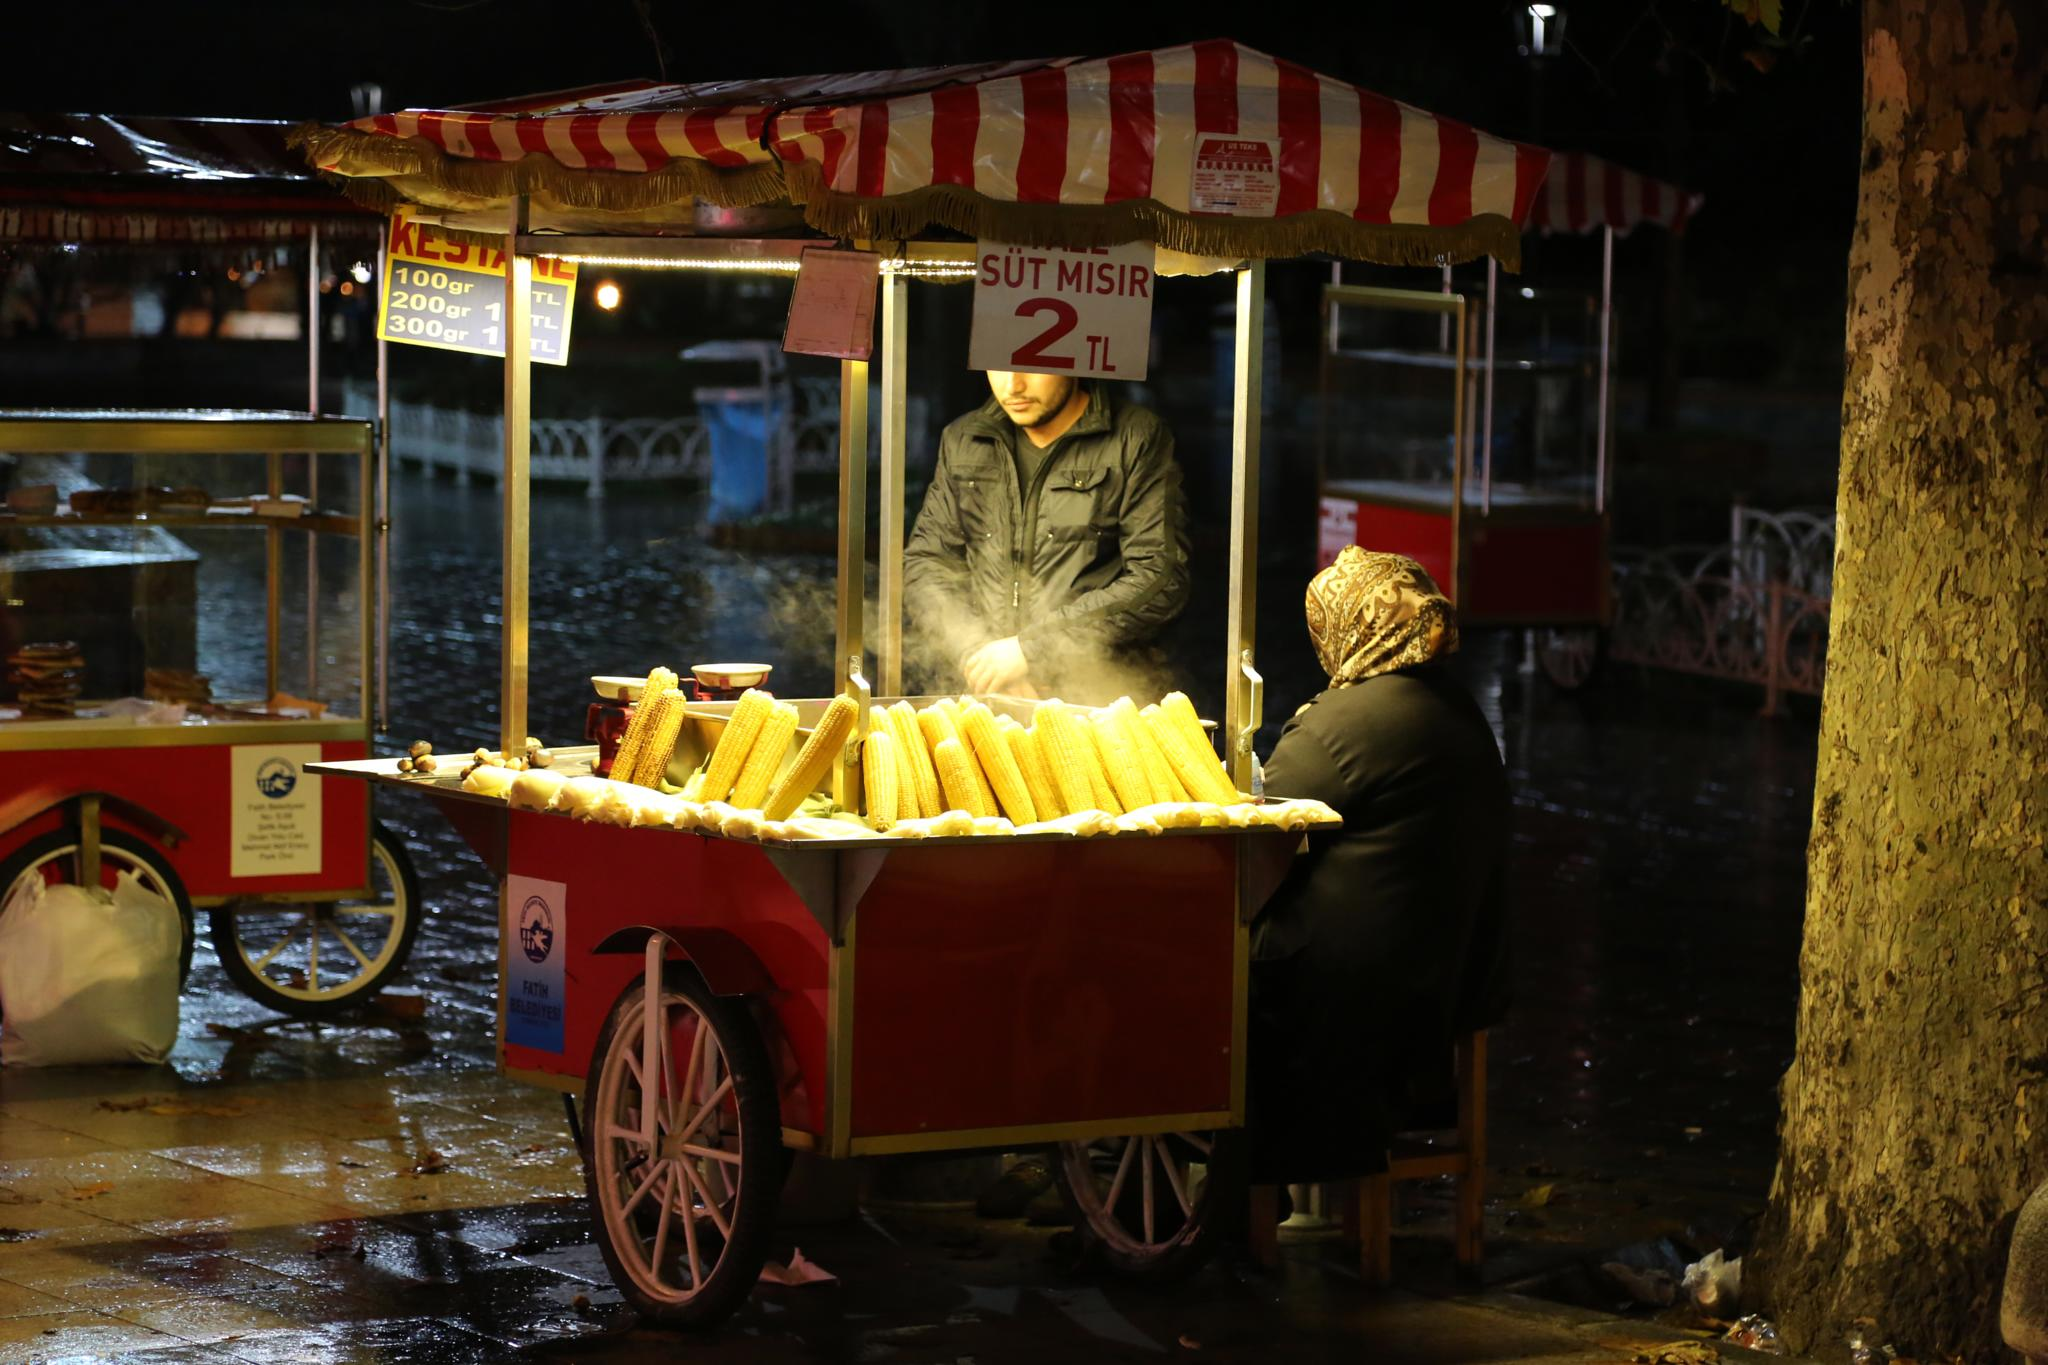 Grilled corn vendor - lady by bechara.yared